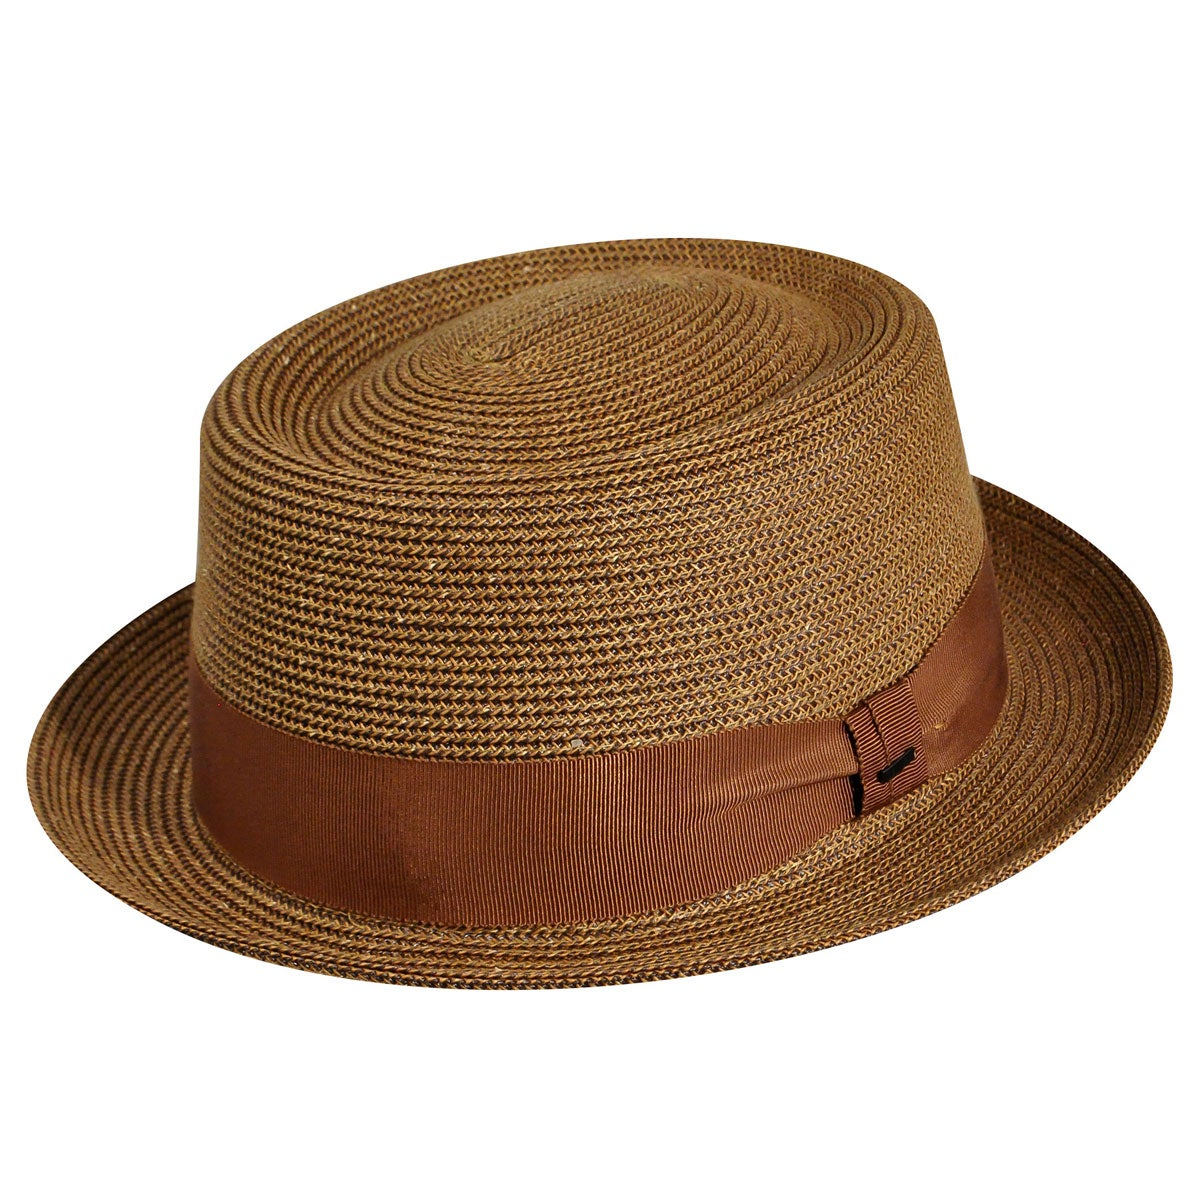 1950s Mens Hats | 50s Vintage Men's Hats Waits Braided Pork Pie $80.00 AT vintagedancer.com